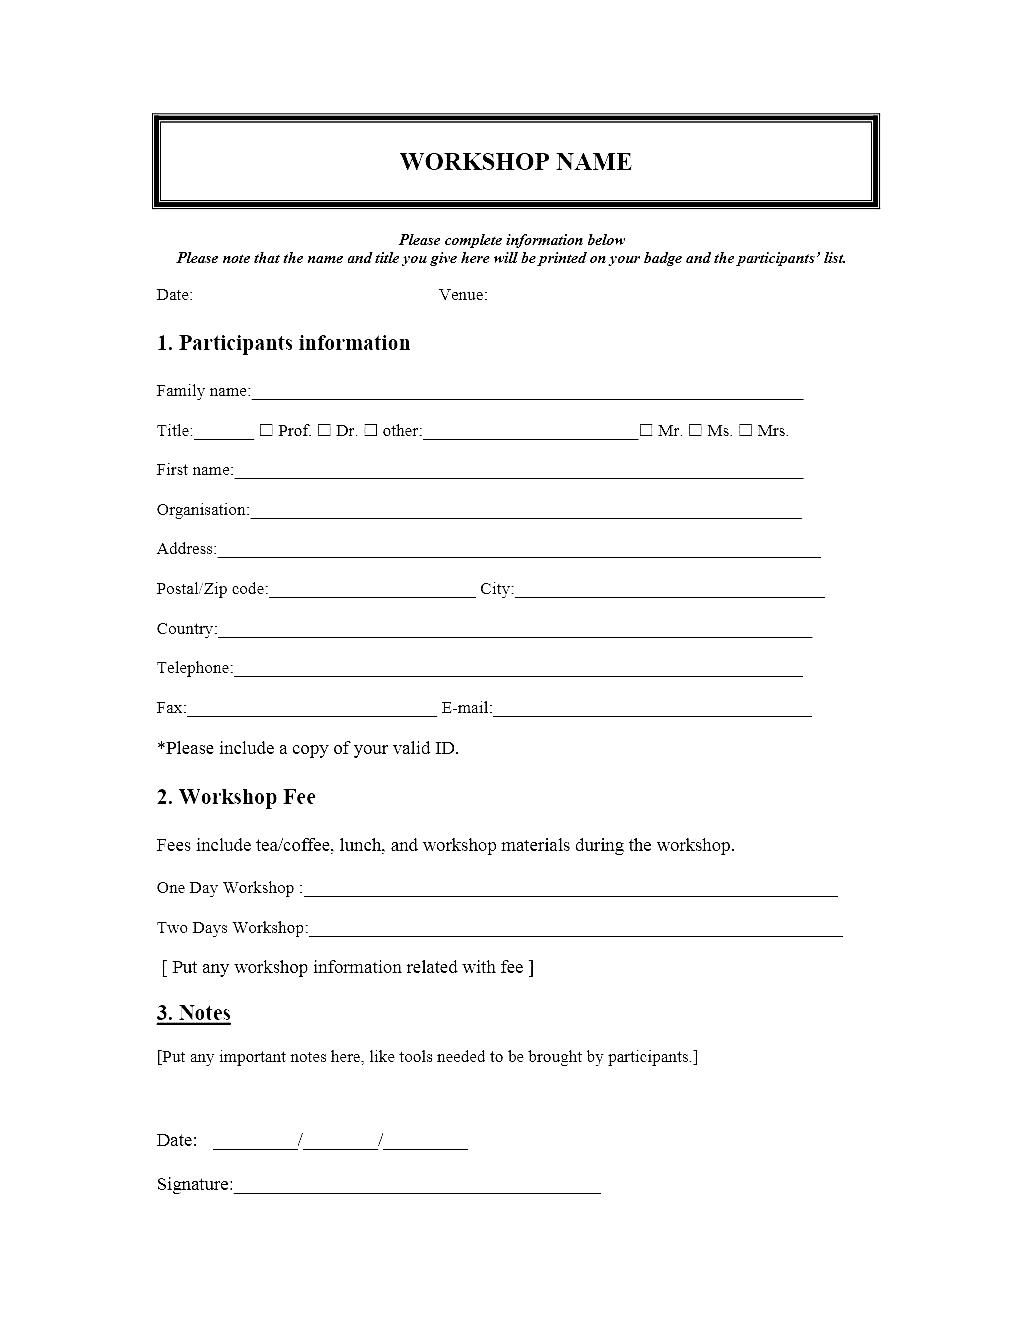 Event Registration Form Template Word Simple Event Registration Form Template Microsoft Word  Besttemplate123 .